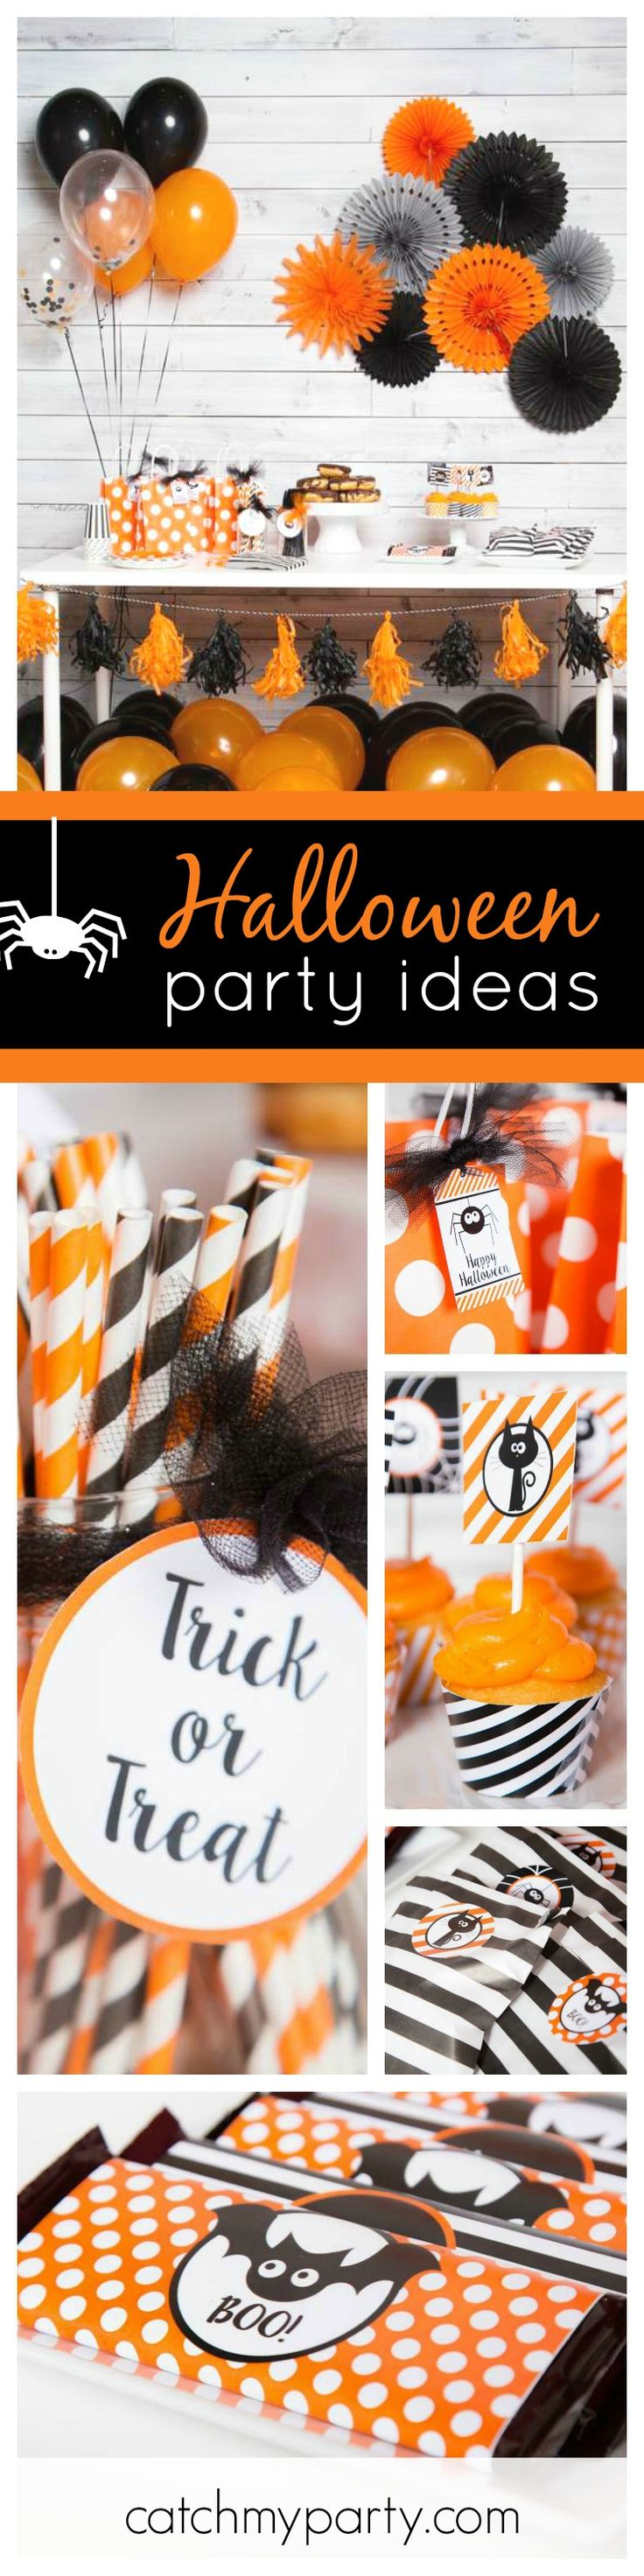 Check out this fun and simple Not Scary Halloween Party! The orange & black decorations are awesome! See more party ideas and share yours at CatchMyParty.com